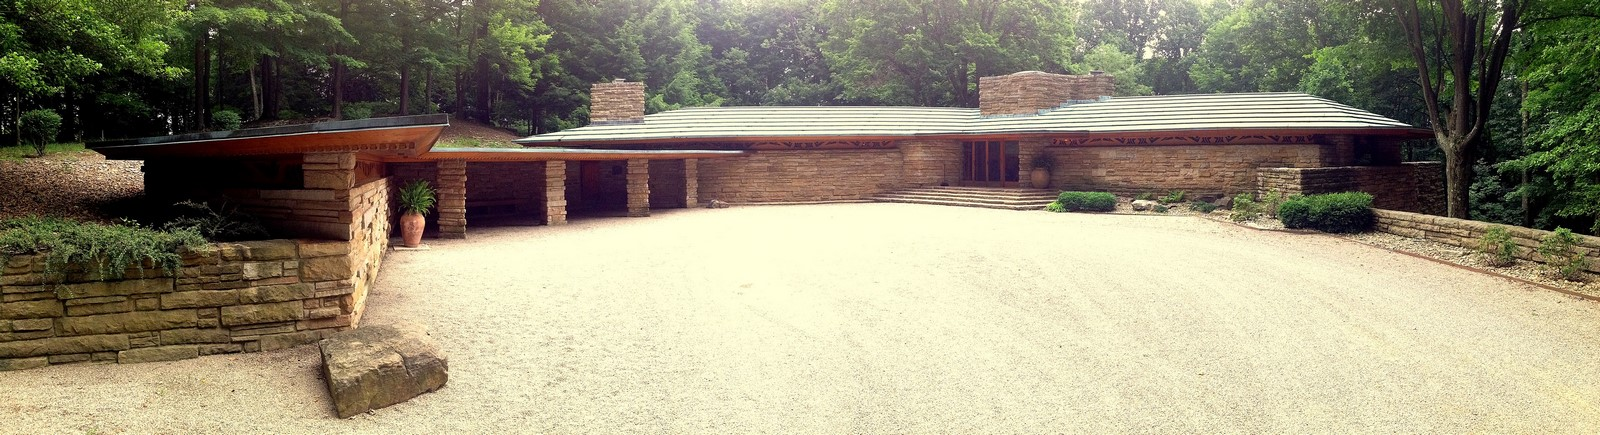 10 Things you did not know about Organic architecture - Sheet4